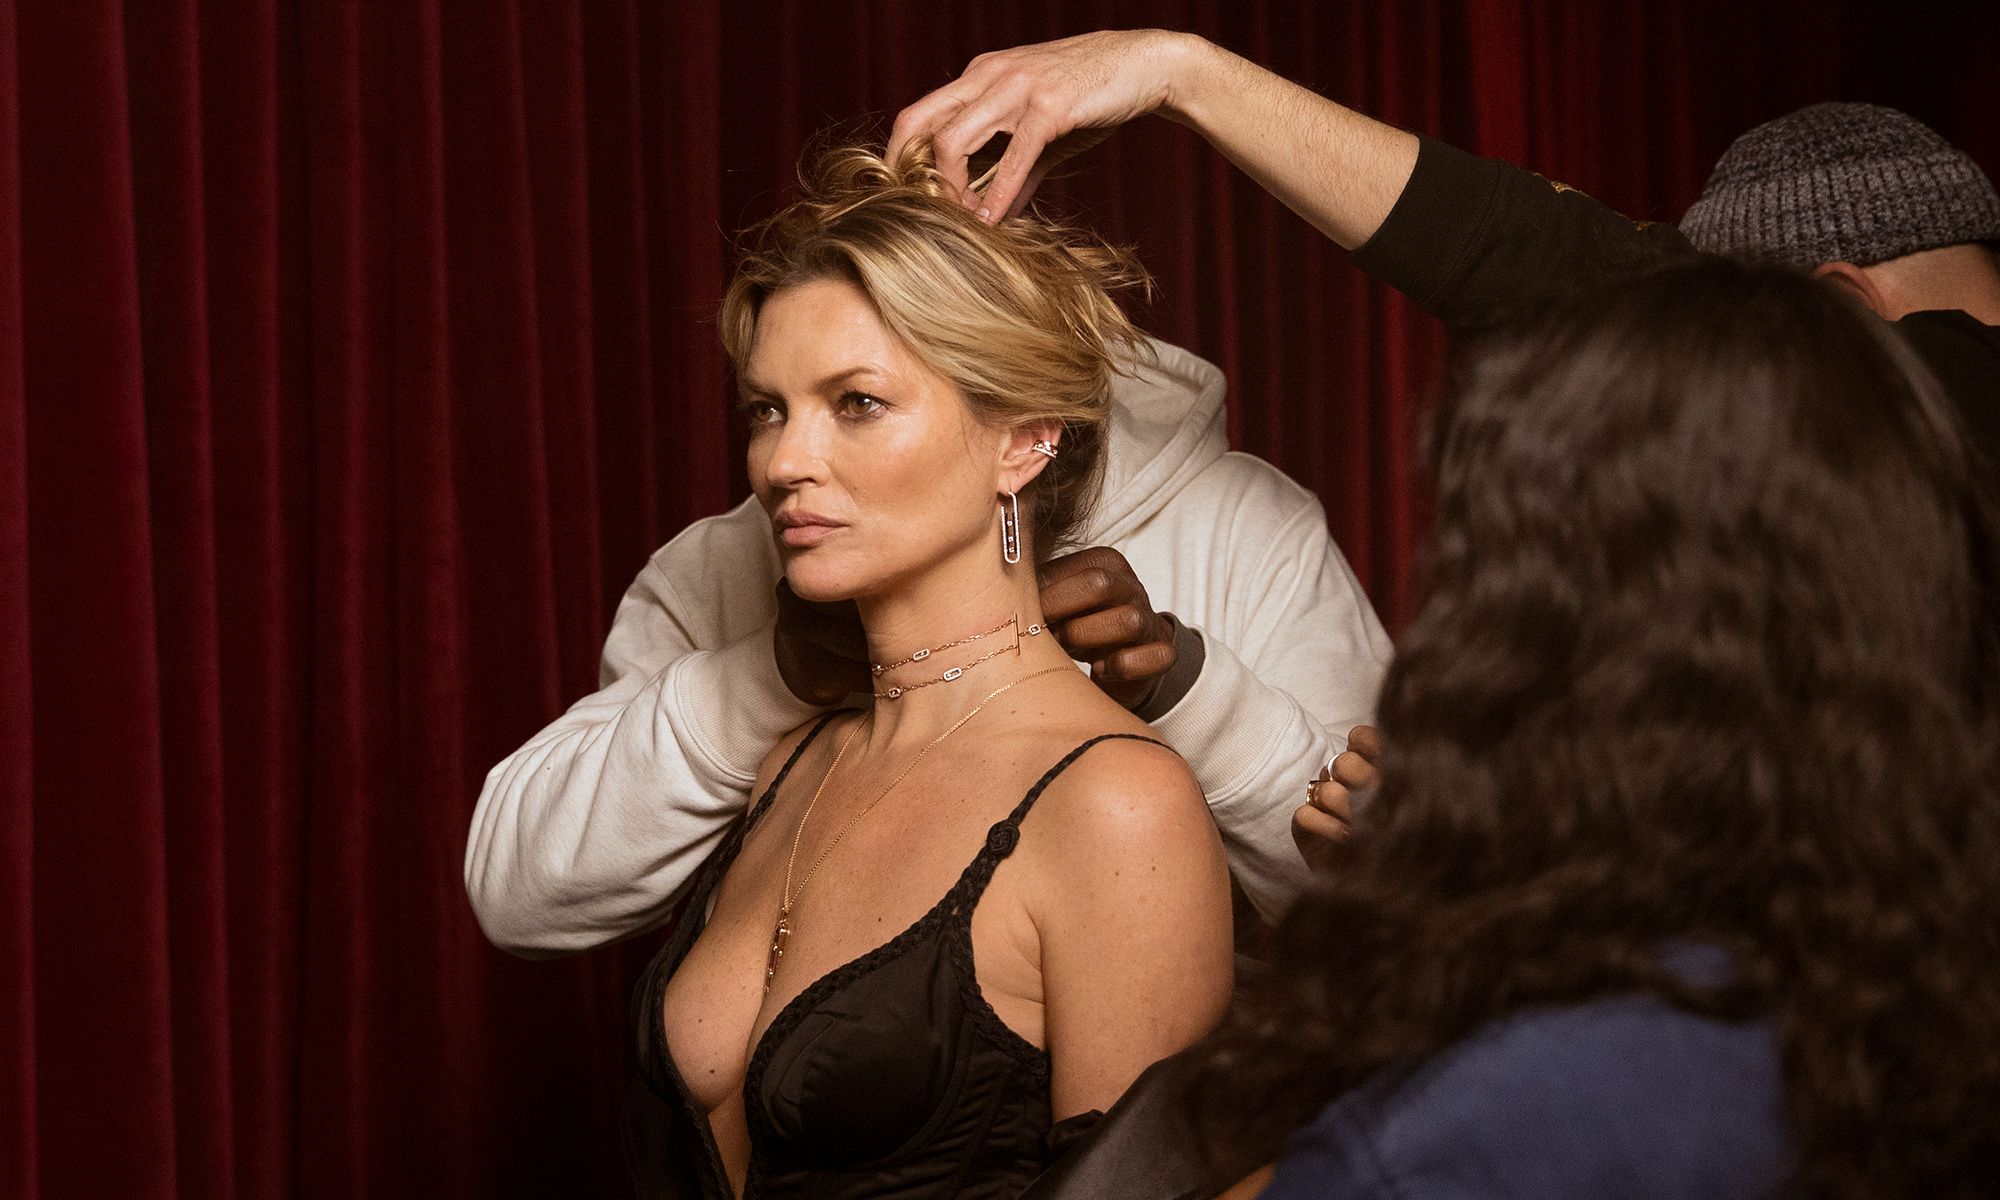 Kate Moss' s Interview